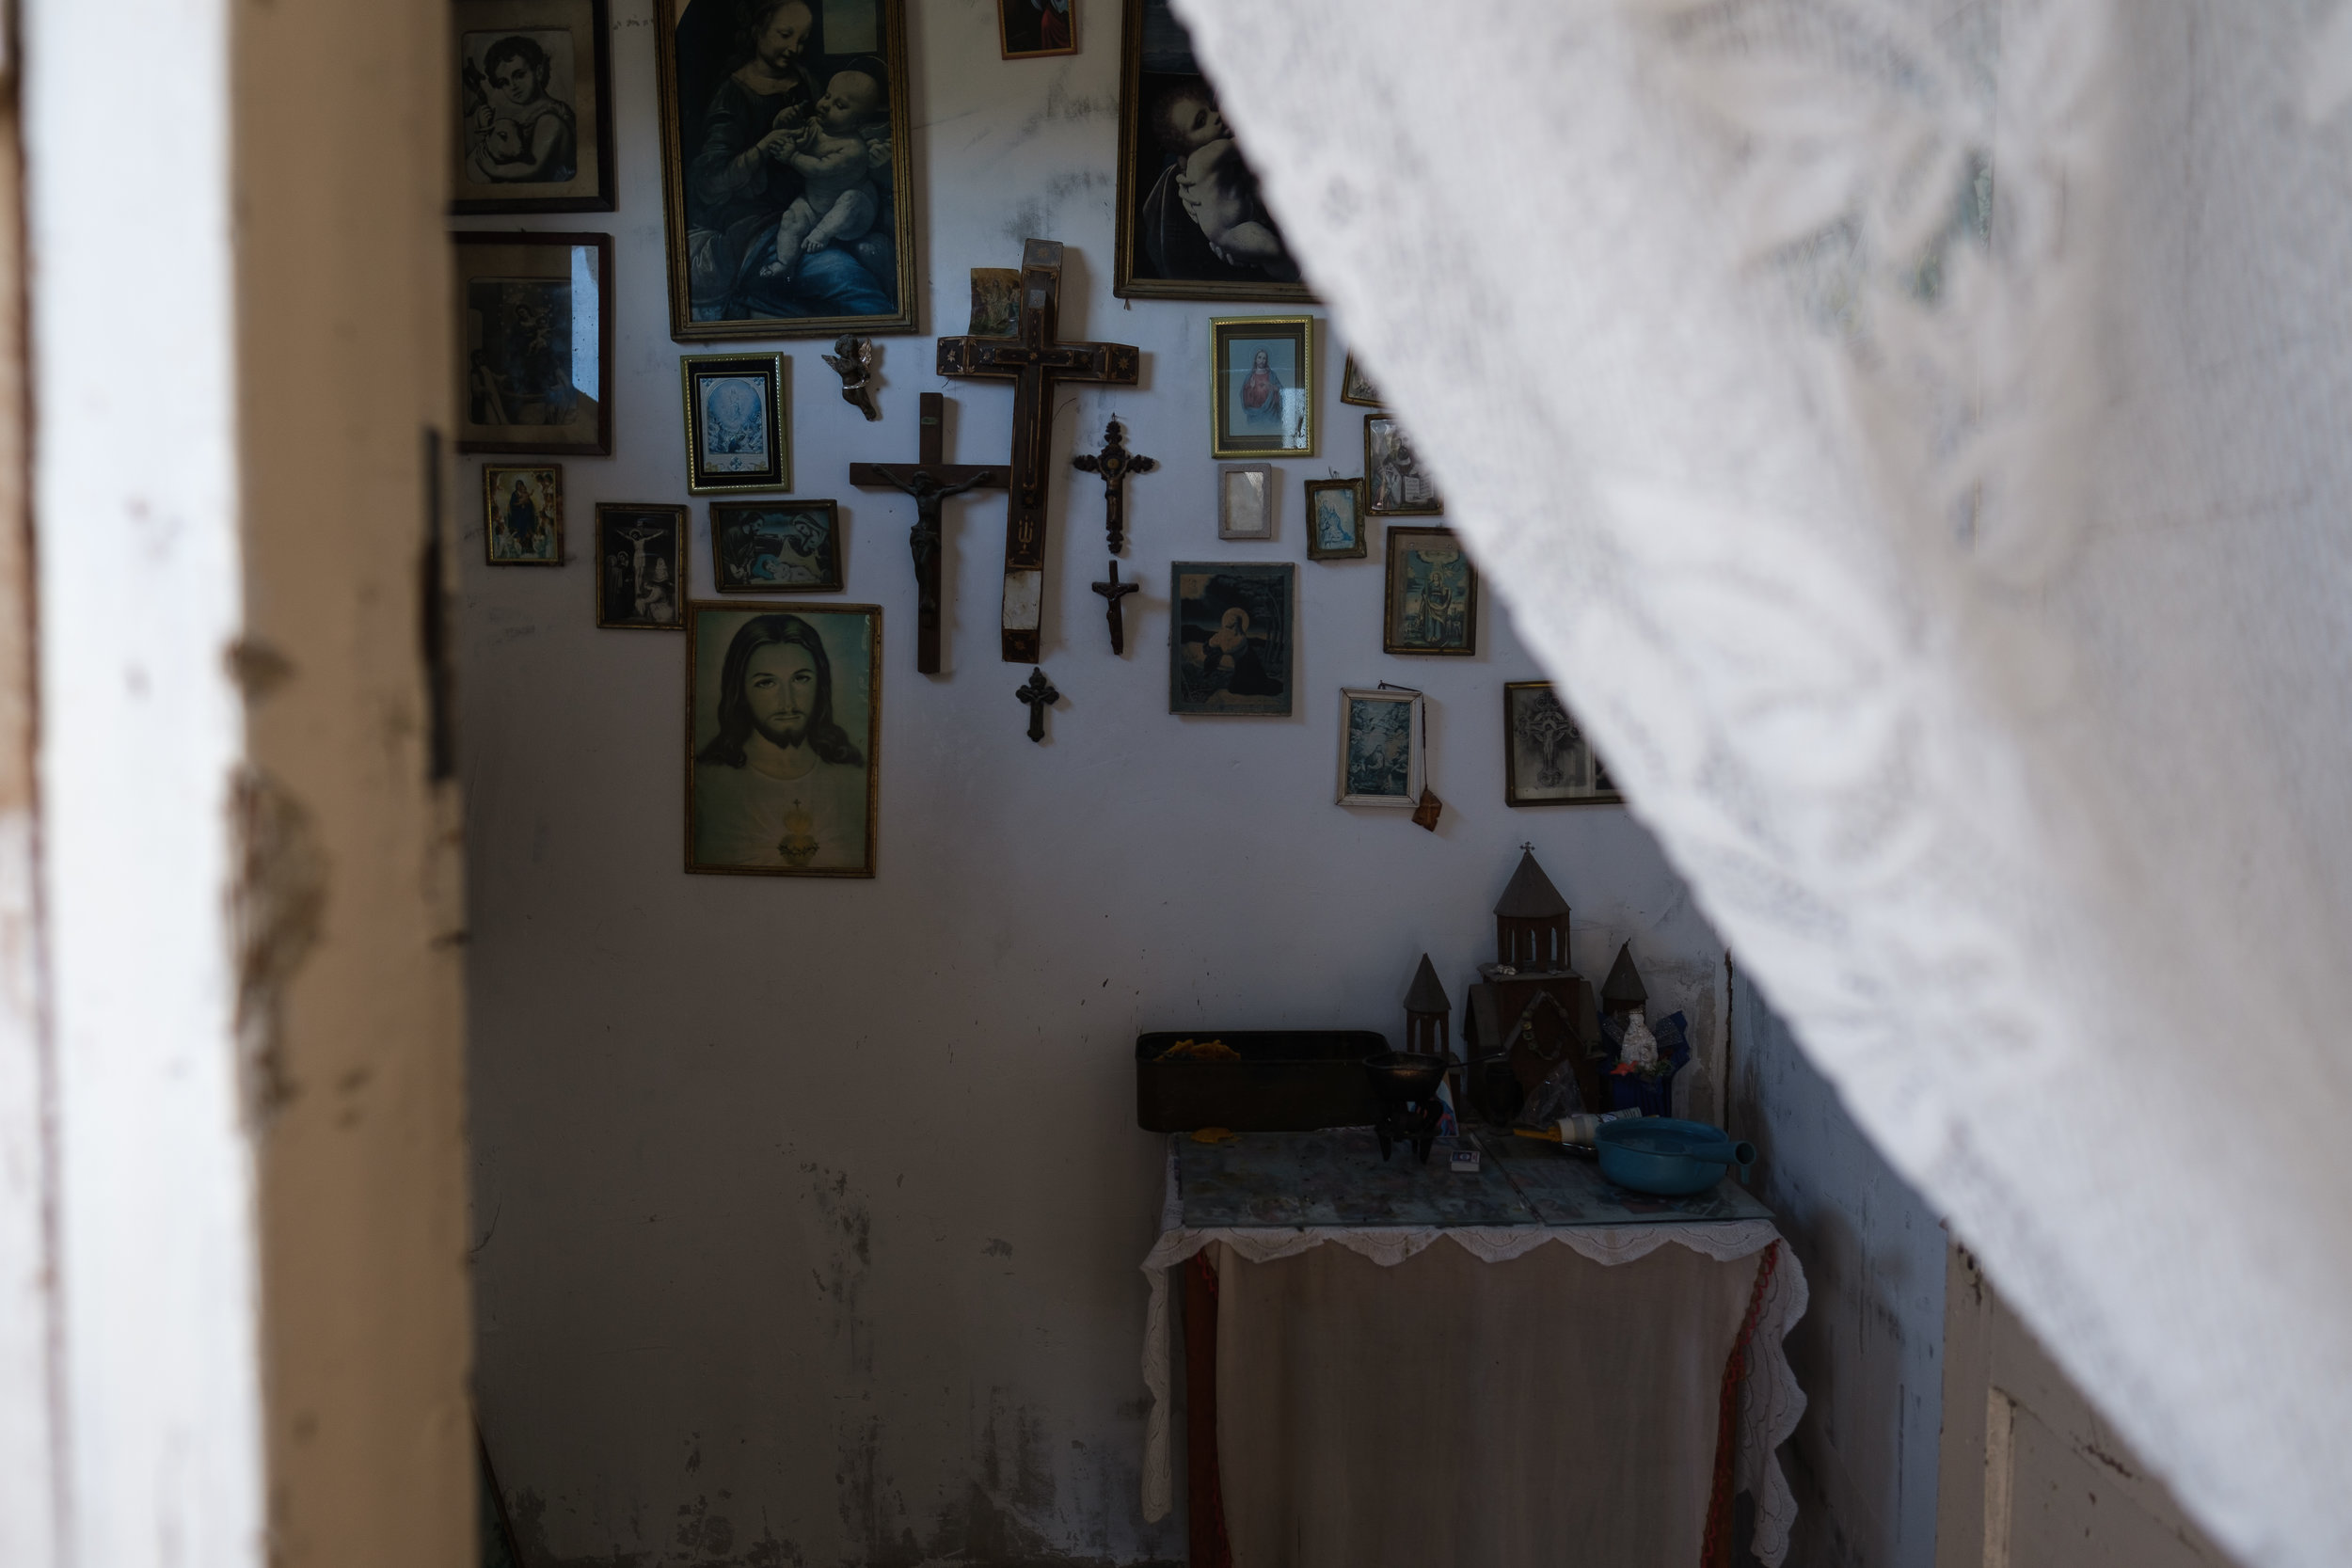 Religion is an important part of life for most Armenians including Svetlana. Walking into her home a prayer room full of crosses caught my eye.